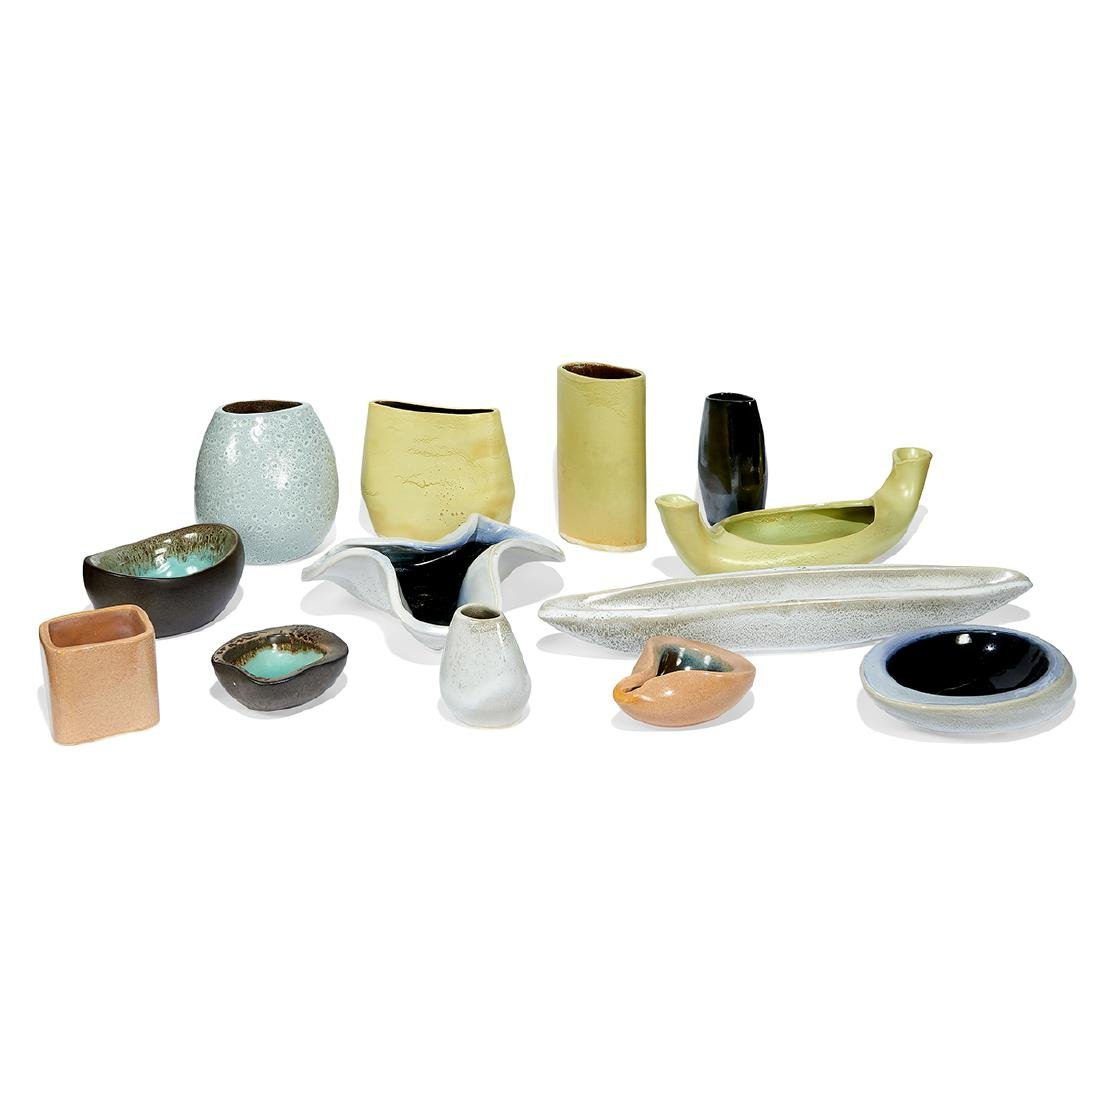 Russel Wright for Bauer collection of 13 vessels